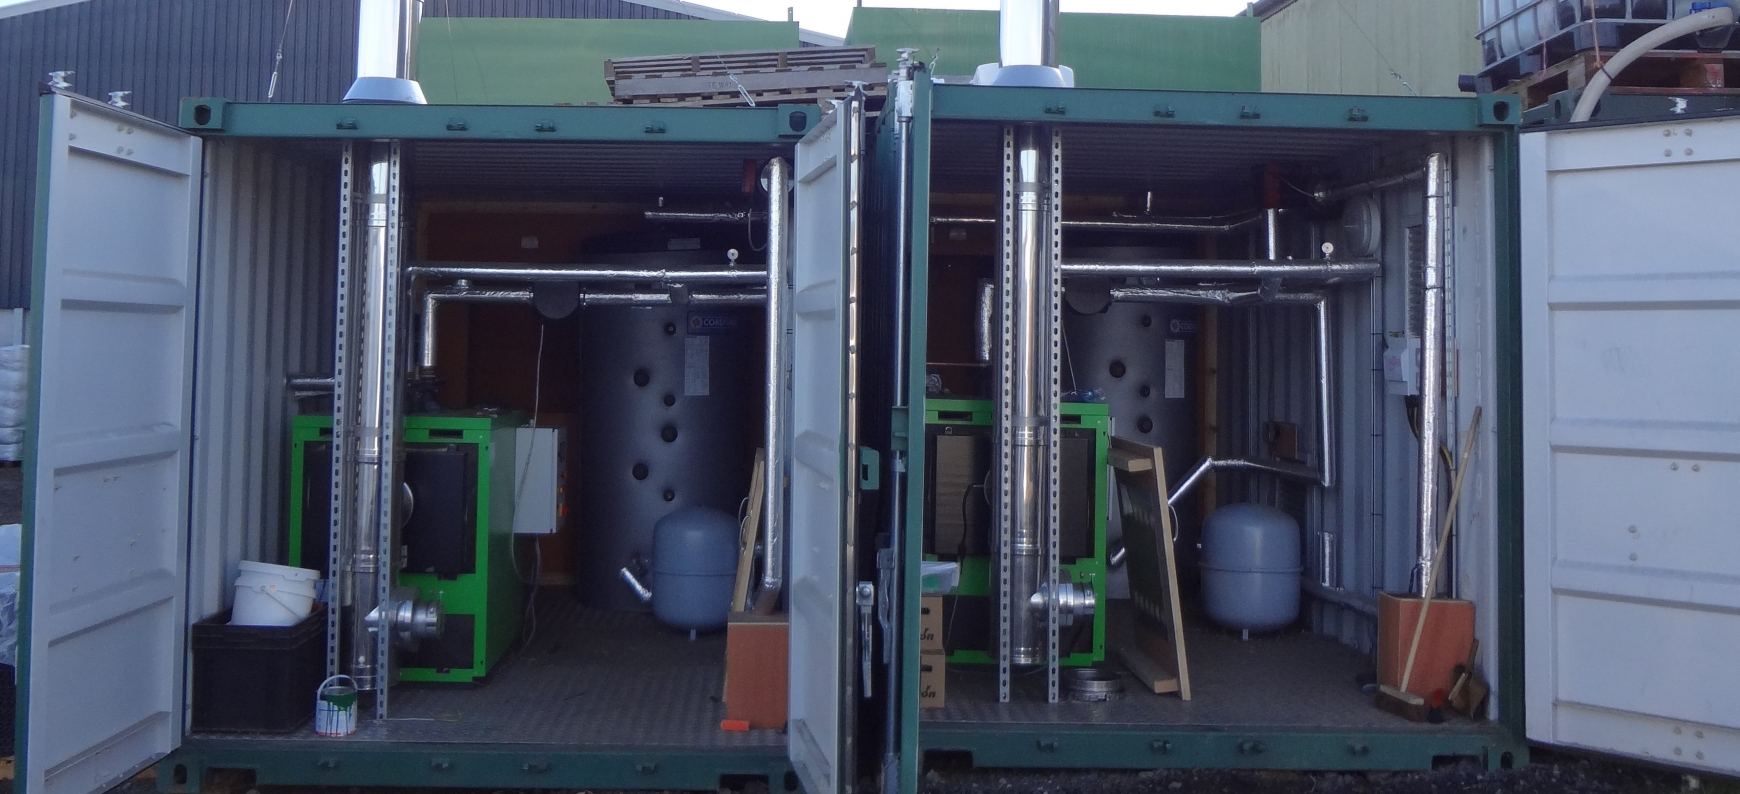 Two green boilers in containers